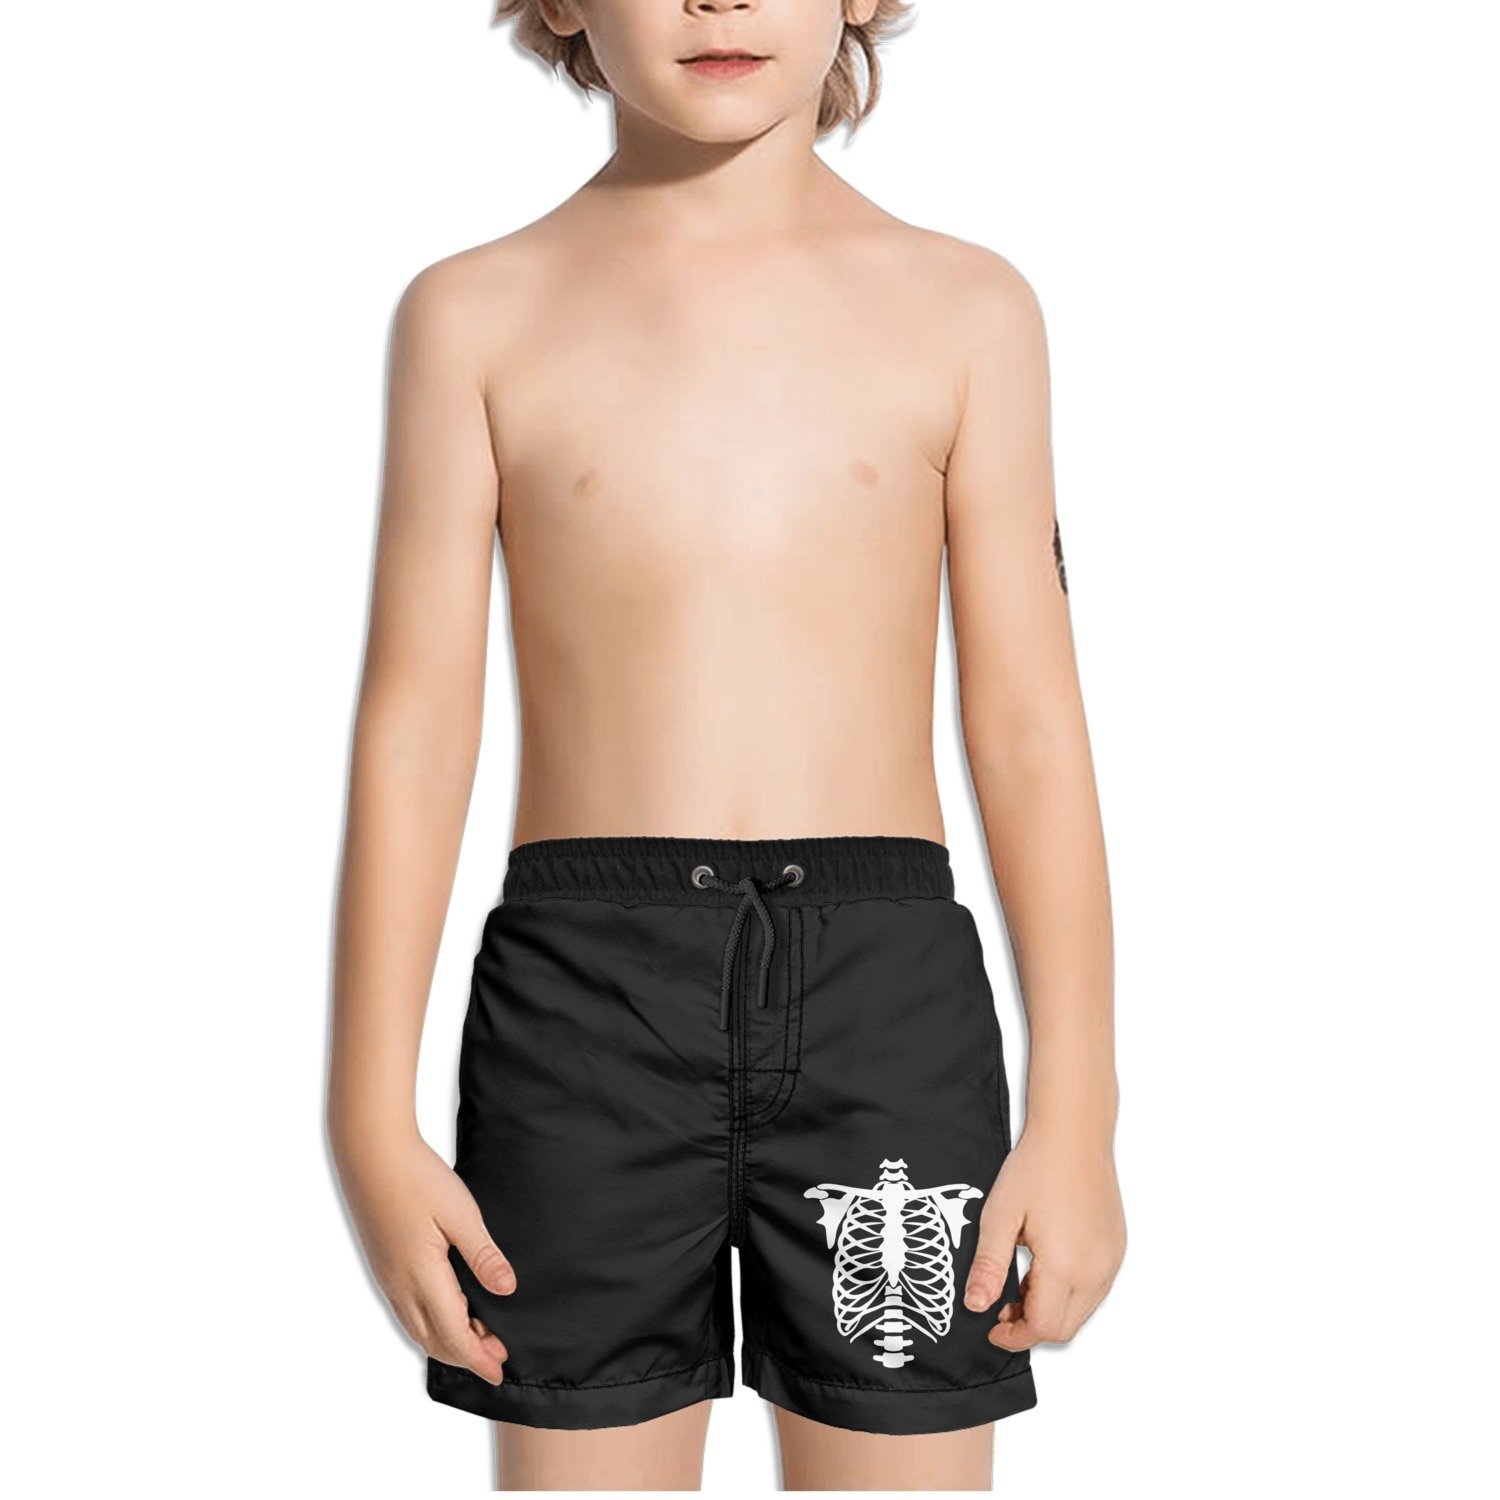 Ouxioaz Boys Swim Trunk Skeleton Torso Beach Board Shorts